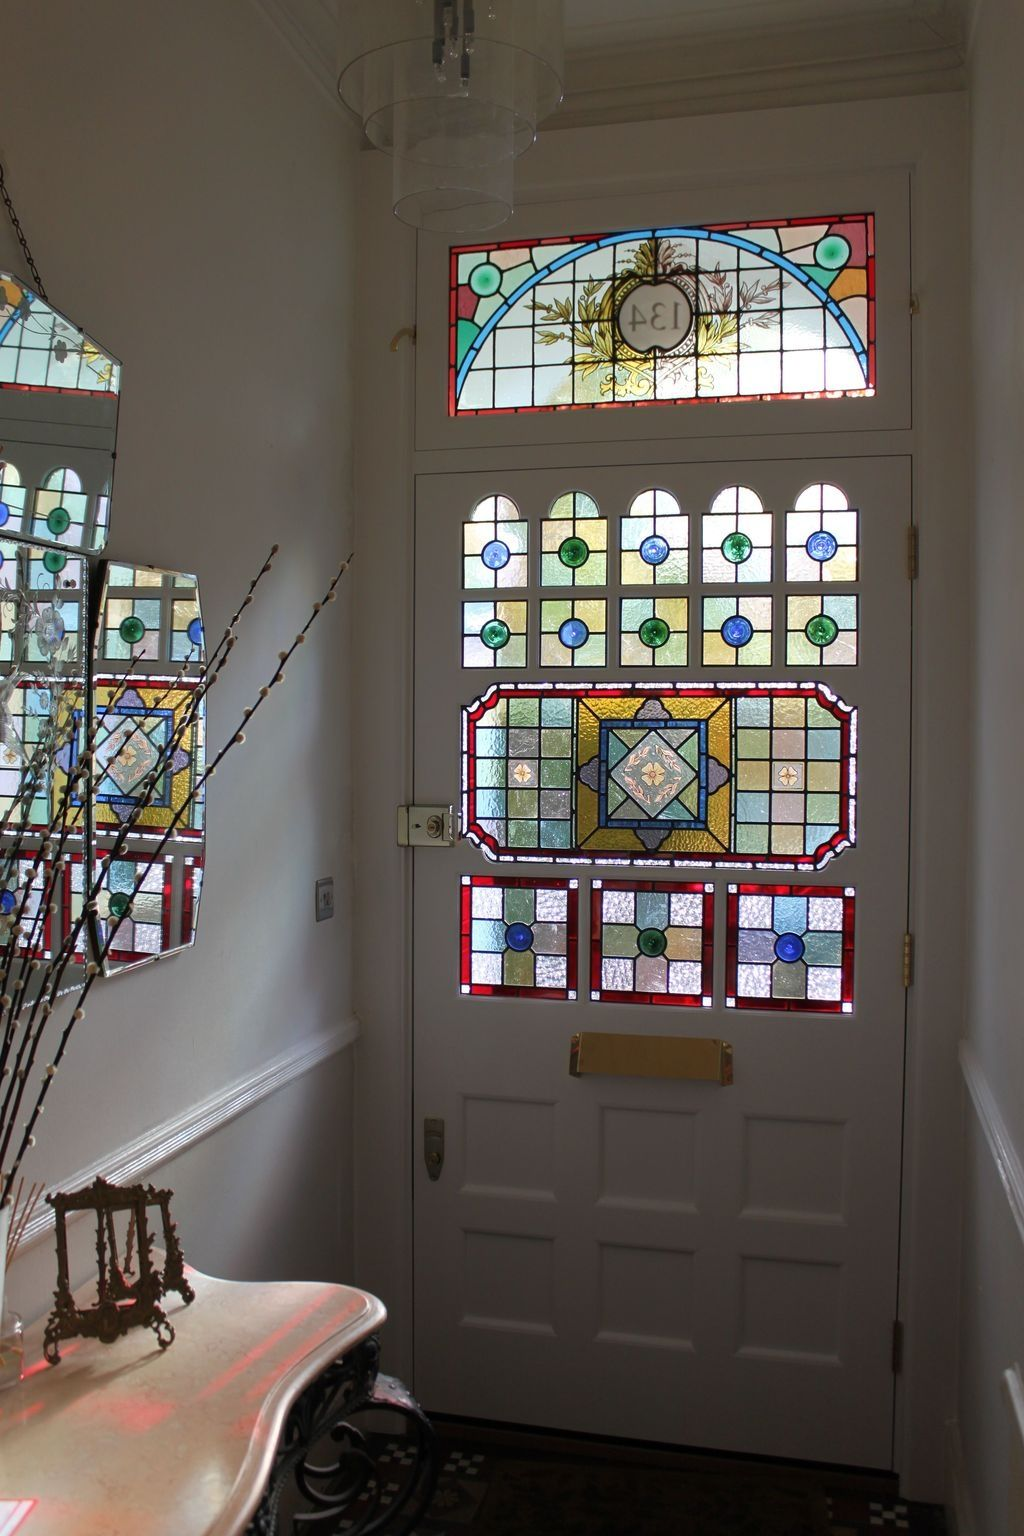 The Best Stained Glass Home Window Design Ideas 18 House Window Design Stained Glass Door Window Design